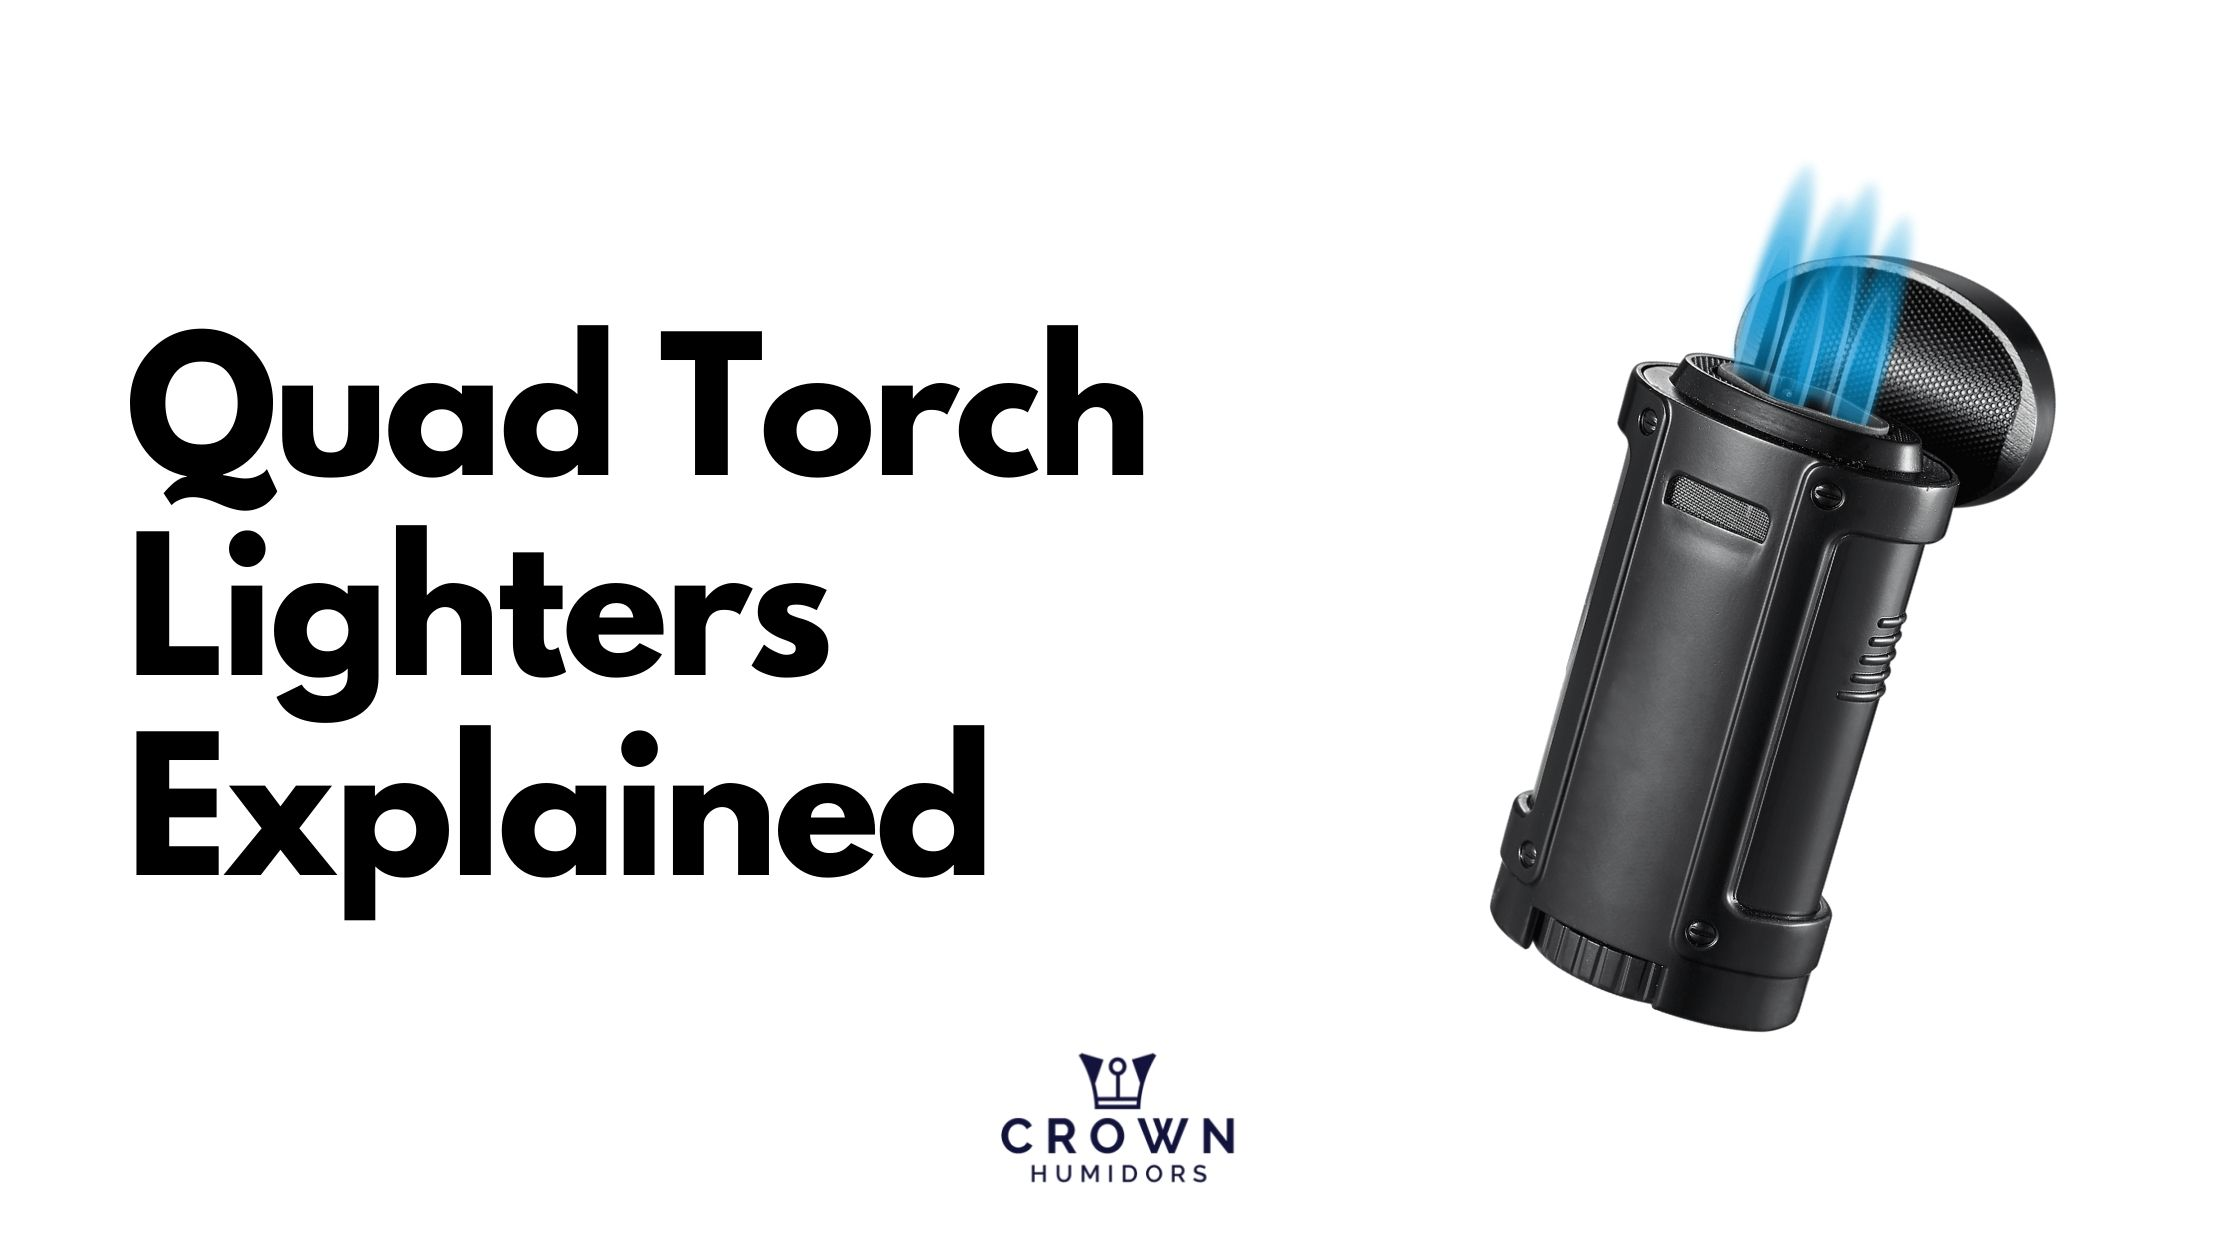 tHE QUAD TORCH LIGHTERs EXPLAINED